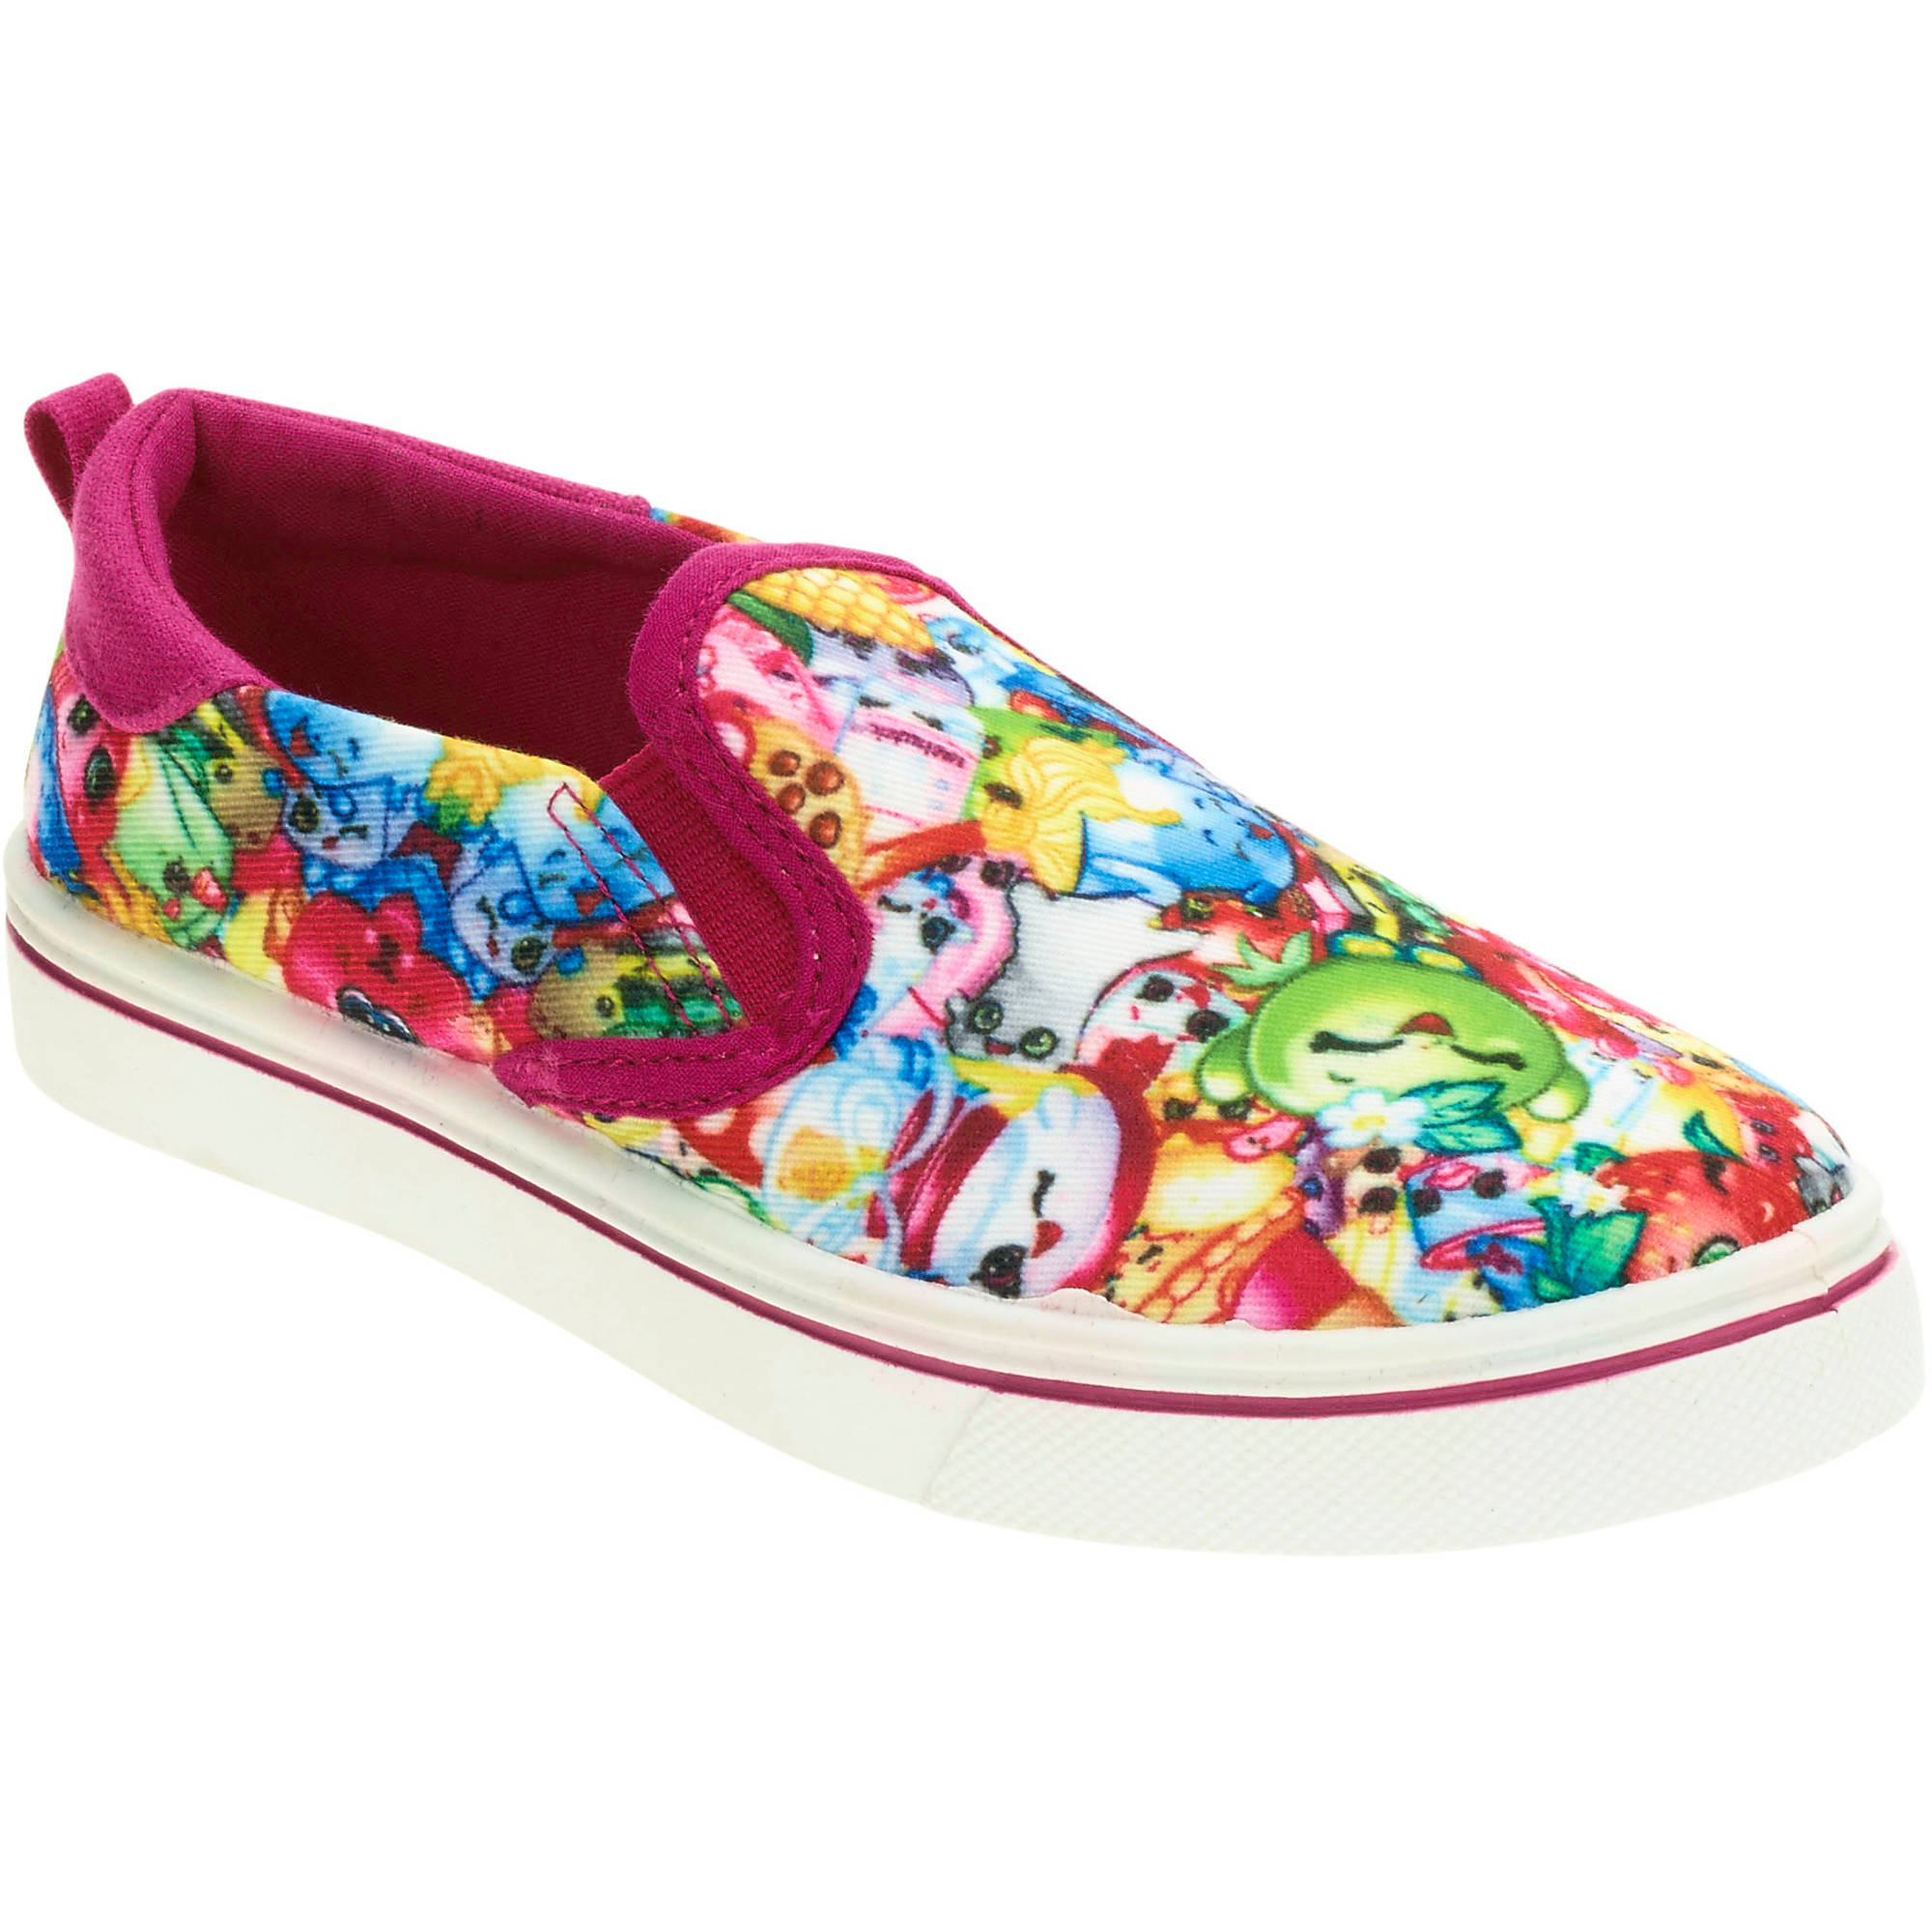 Girls' Casual Slip On Shoe